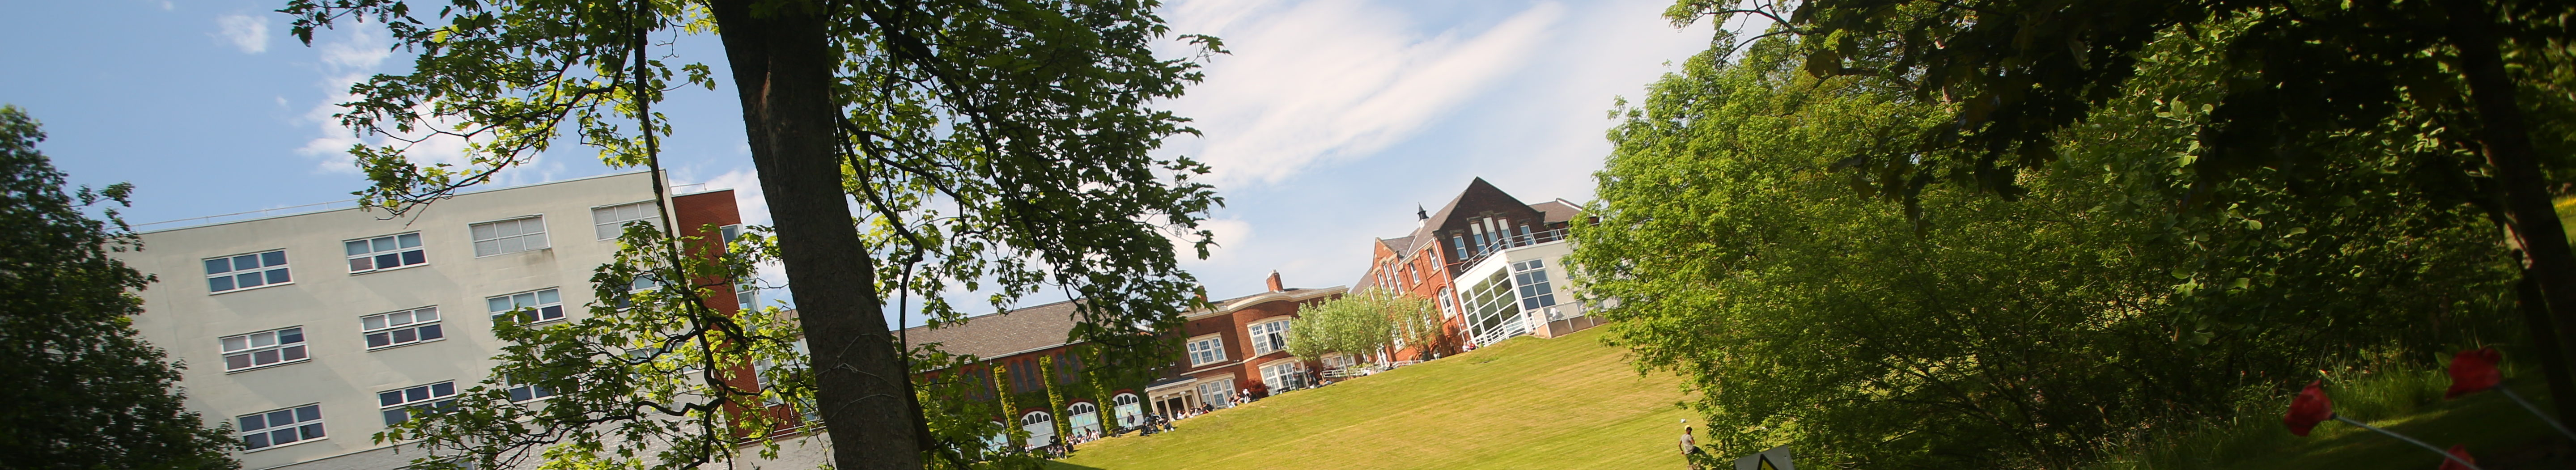 Cardinal Newman College main building and grounds